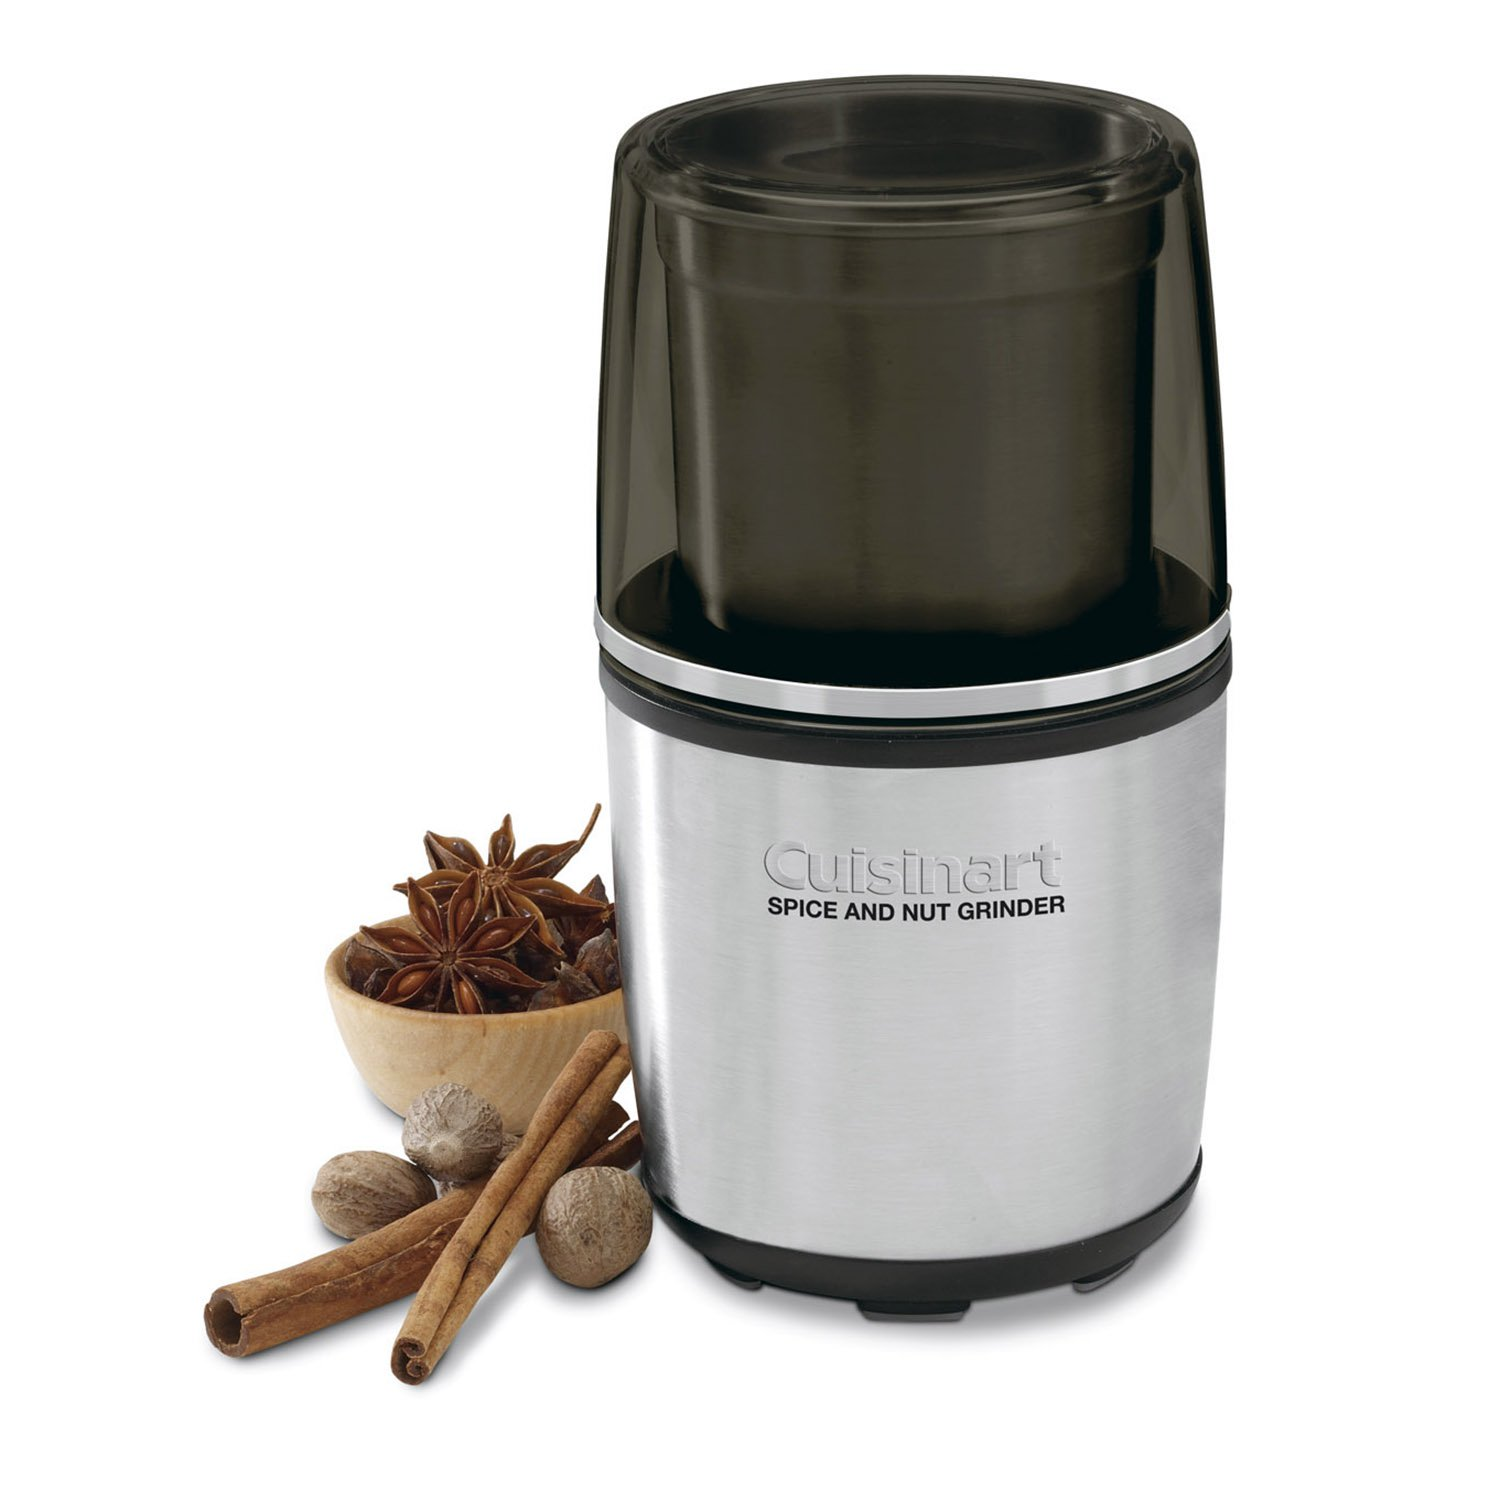 Cuisinart Kitchen Freshly Grounded Spice and Nut Grinder (Certified Refurbished)